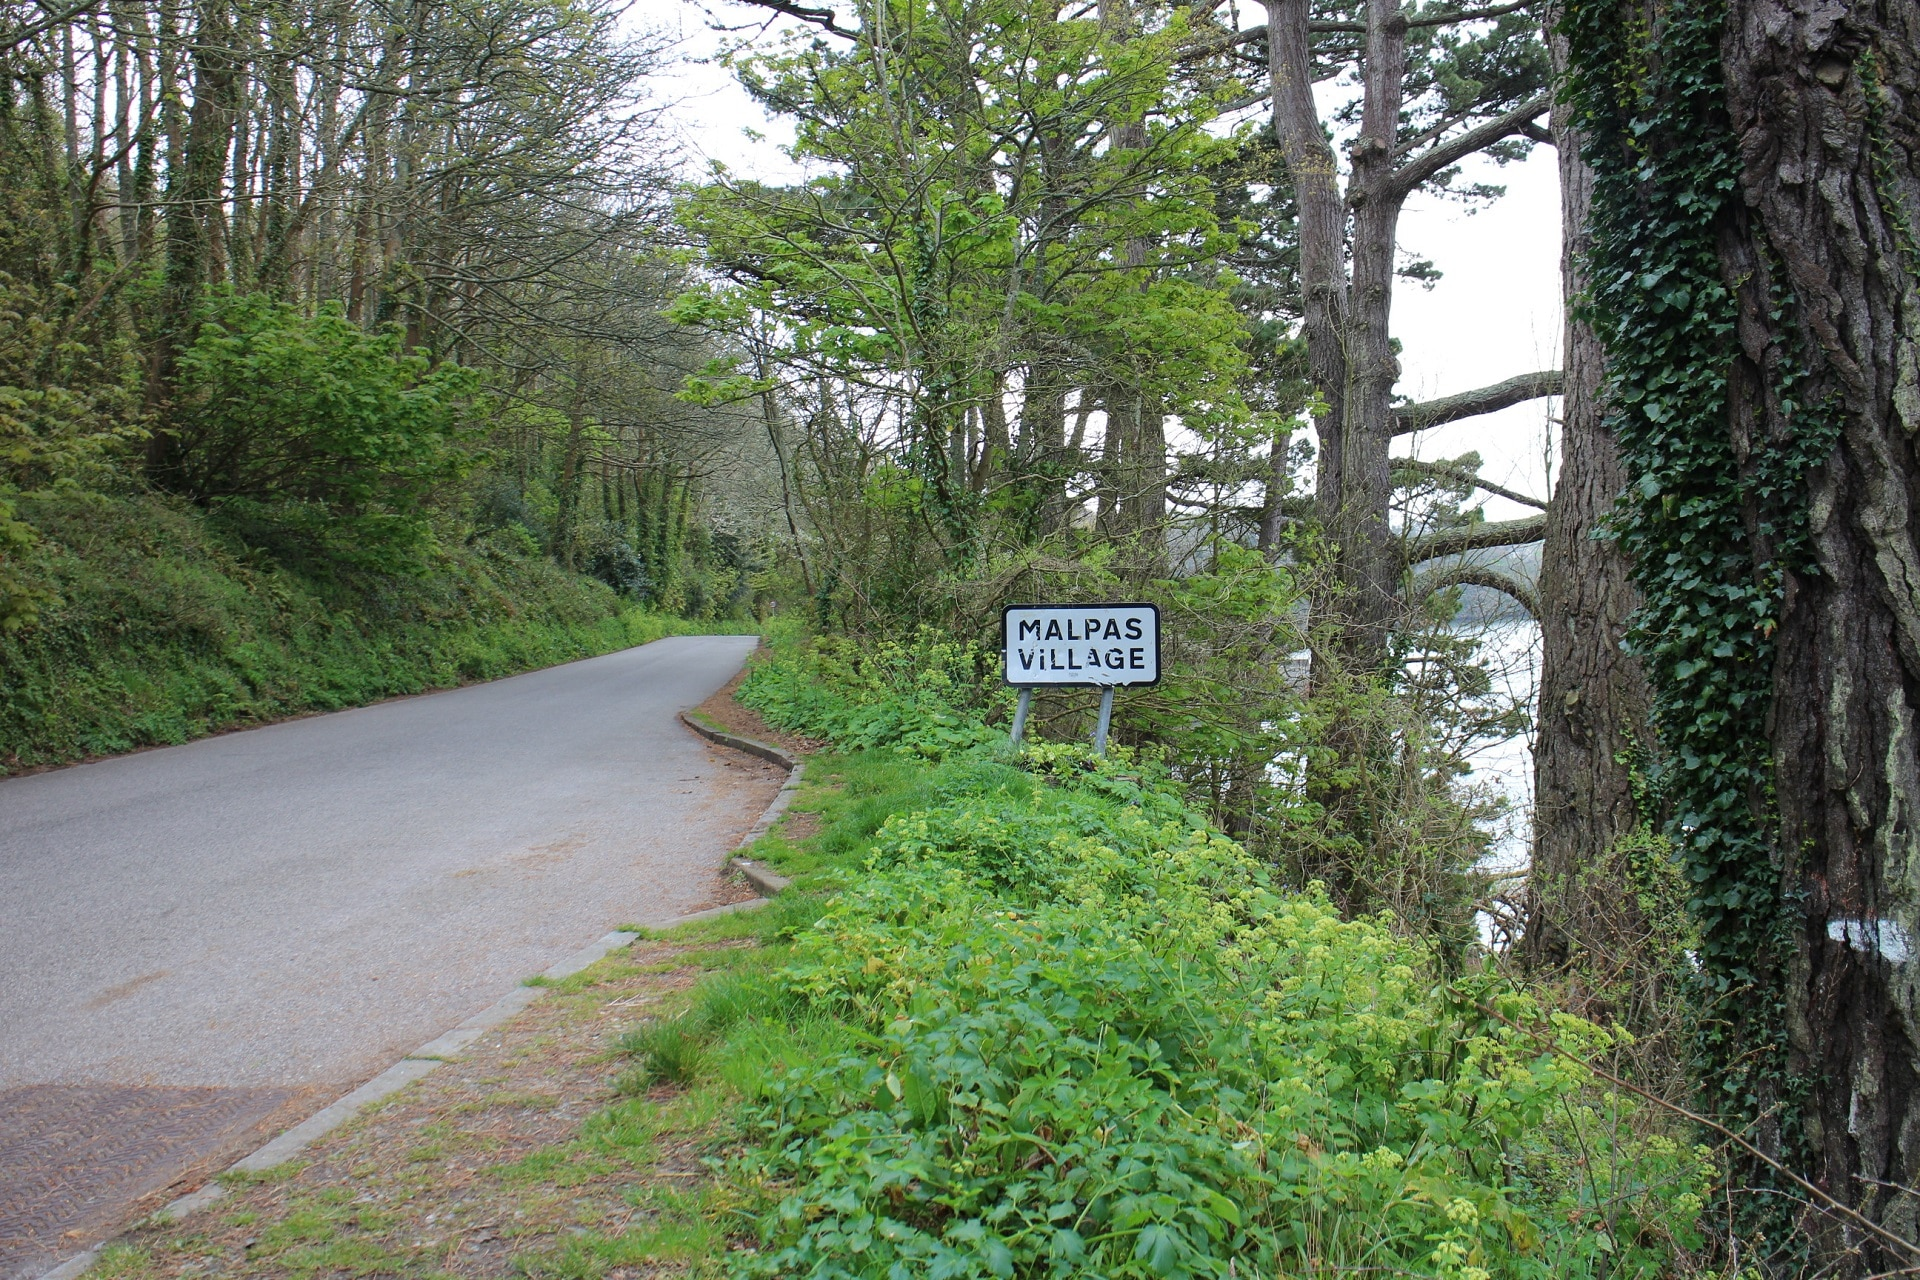 Sign on the road showing the boundary of Malpas village